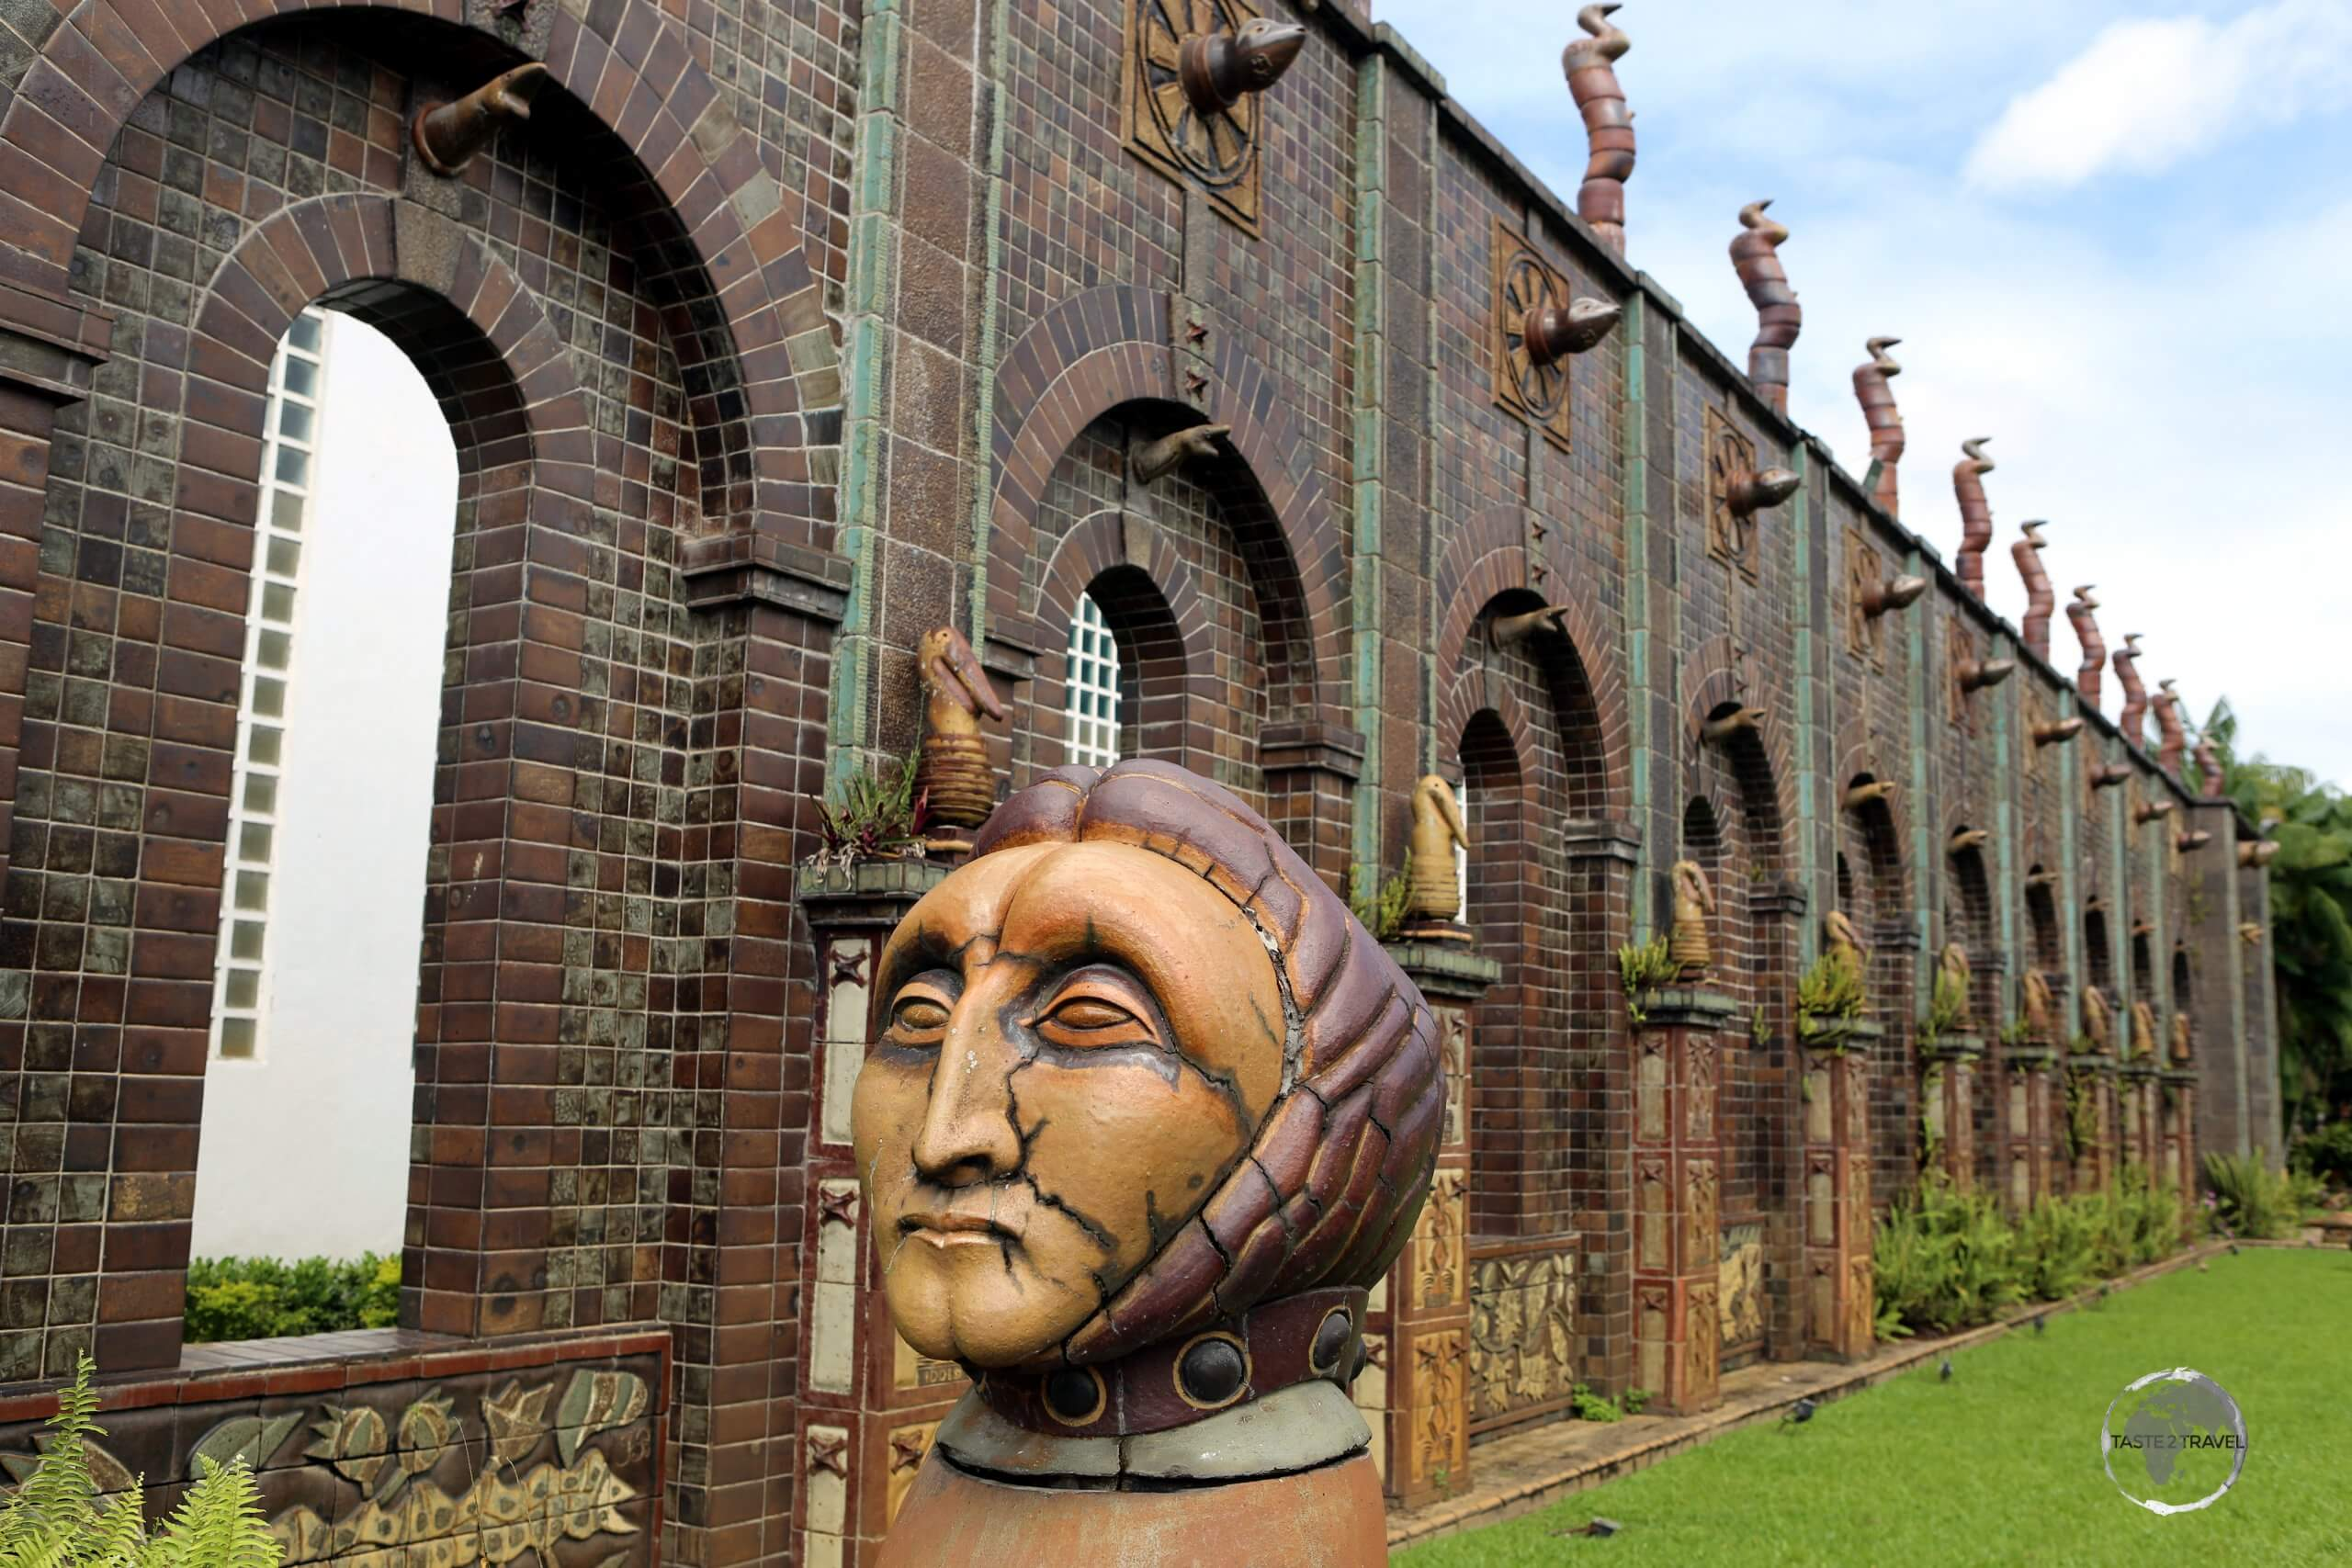 Located in the suburbs of Recife, Francisco Brennand's Ceramic Workshop is home to a vast collection of ceramic artworks which are displayed in a large garden.